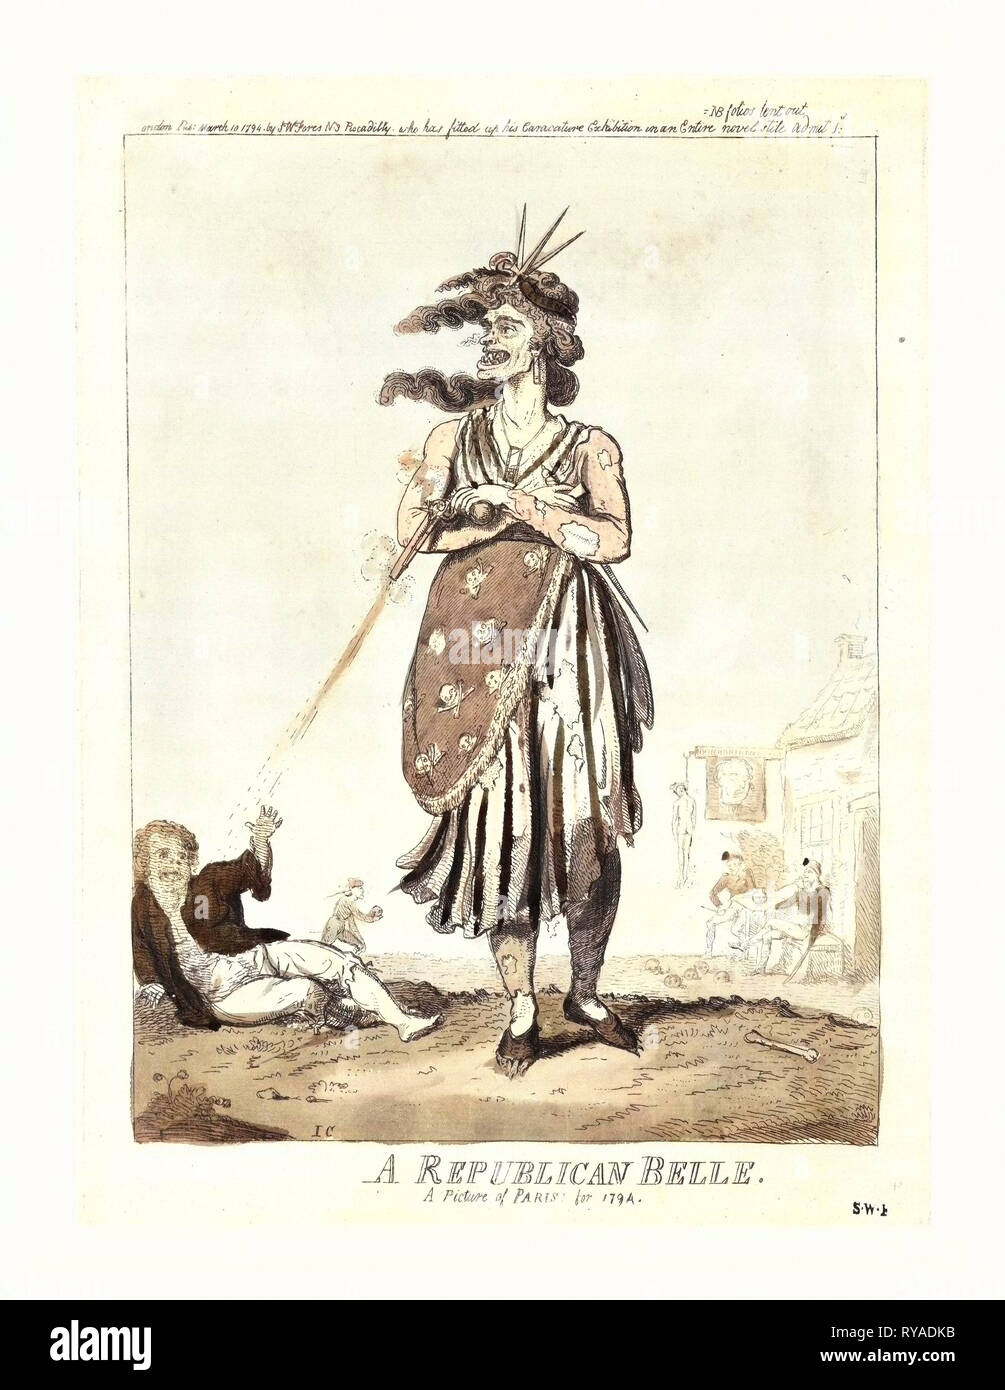 A Republican Belle, a Picture of Paris for 1794, Cruikshank, Isaac, 1756?-1811?, Artist, Engraving 1794, an Old Woman, a Sansculotte, in Ragged Dress, Her Arms Folded Across Her Chest, Holding a Pistol in One Hand, which She Fires at a Man Lying on the Ground, and a Dagger in the Other. There is a Skull and Crossbones Design on Her Garment, She Wears a Miniature Guillotine Hanging from Her Neck, and Claws Are Showing Through Her Shoes. At a Tavern in the Background, Men Are Smoking Pipes and Bowling with Skulls Beneath a Sign Showing the Severed and Bleeding Head of Louis XVI - Stock Image